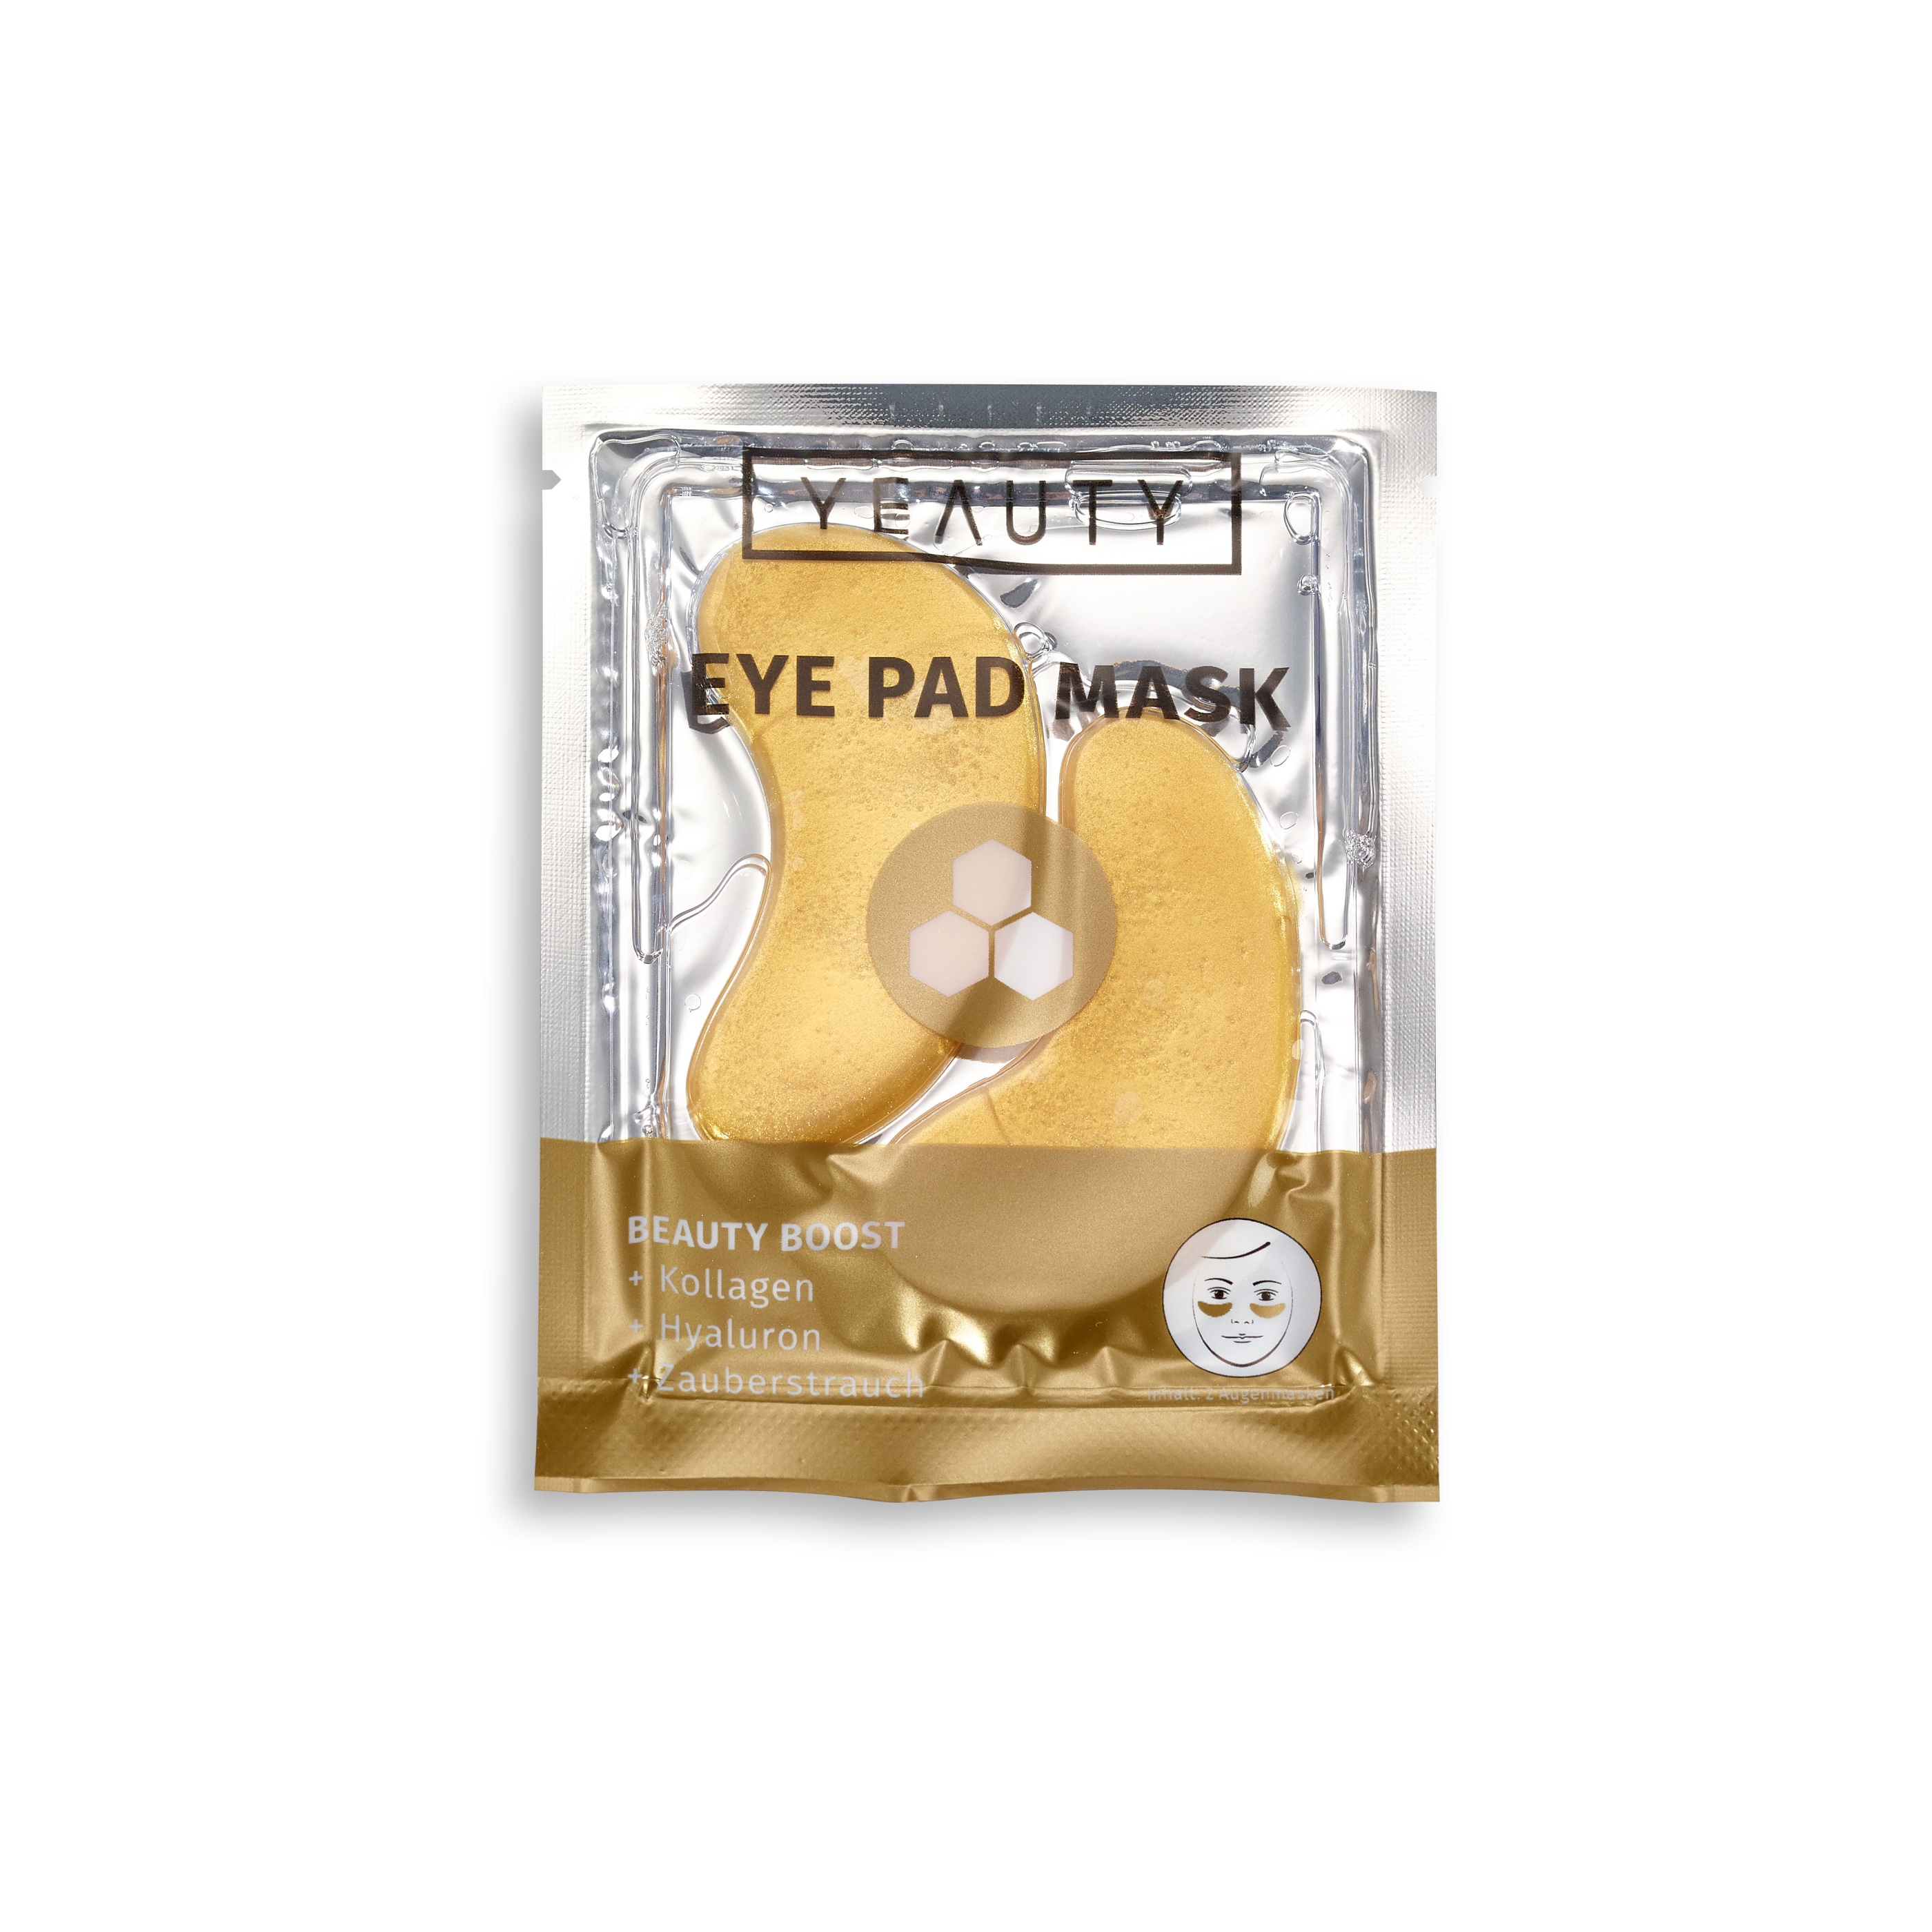 YEAUTY_BEAUTY-BOOST-EYE-PAD-MASK_Frontansicht_300dpi_rgb_isolated (1)